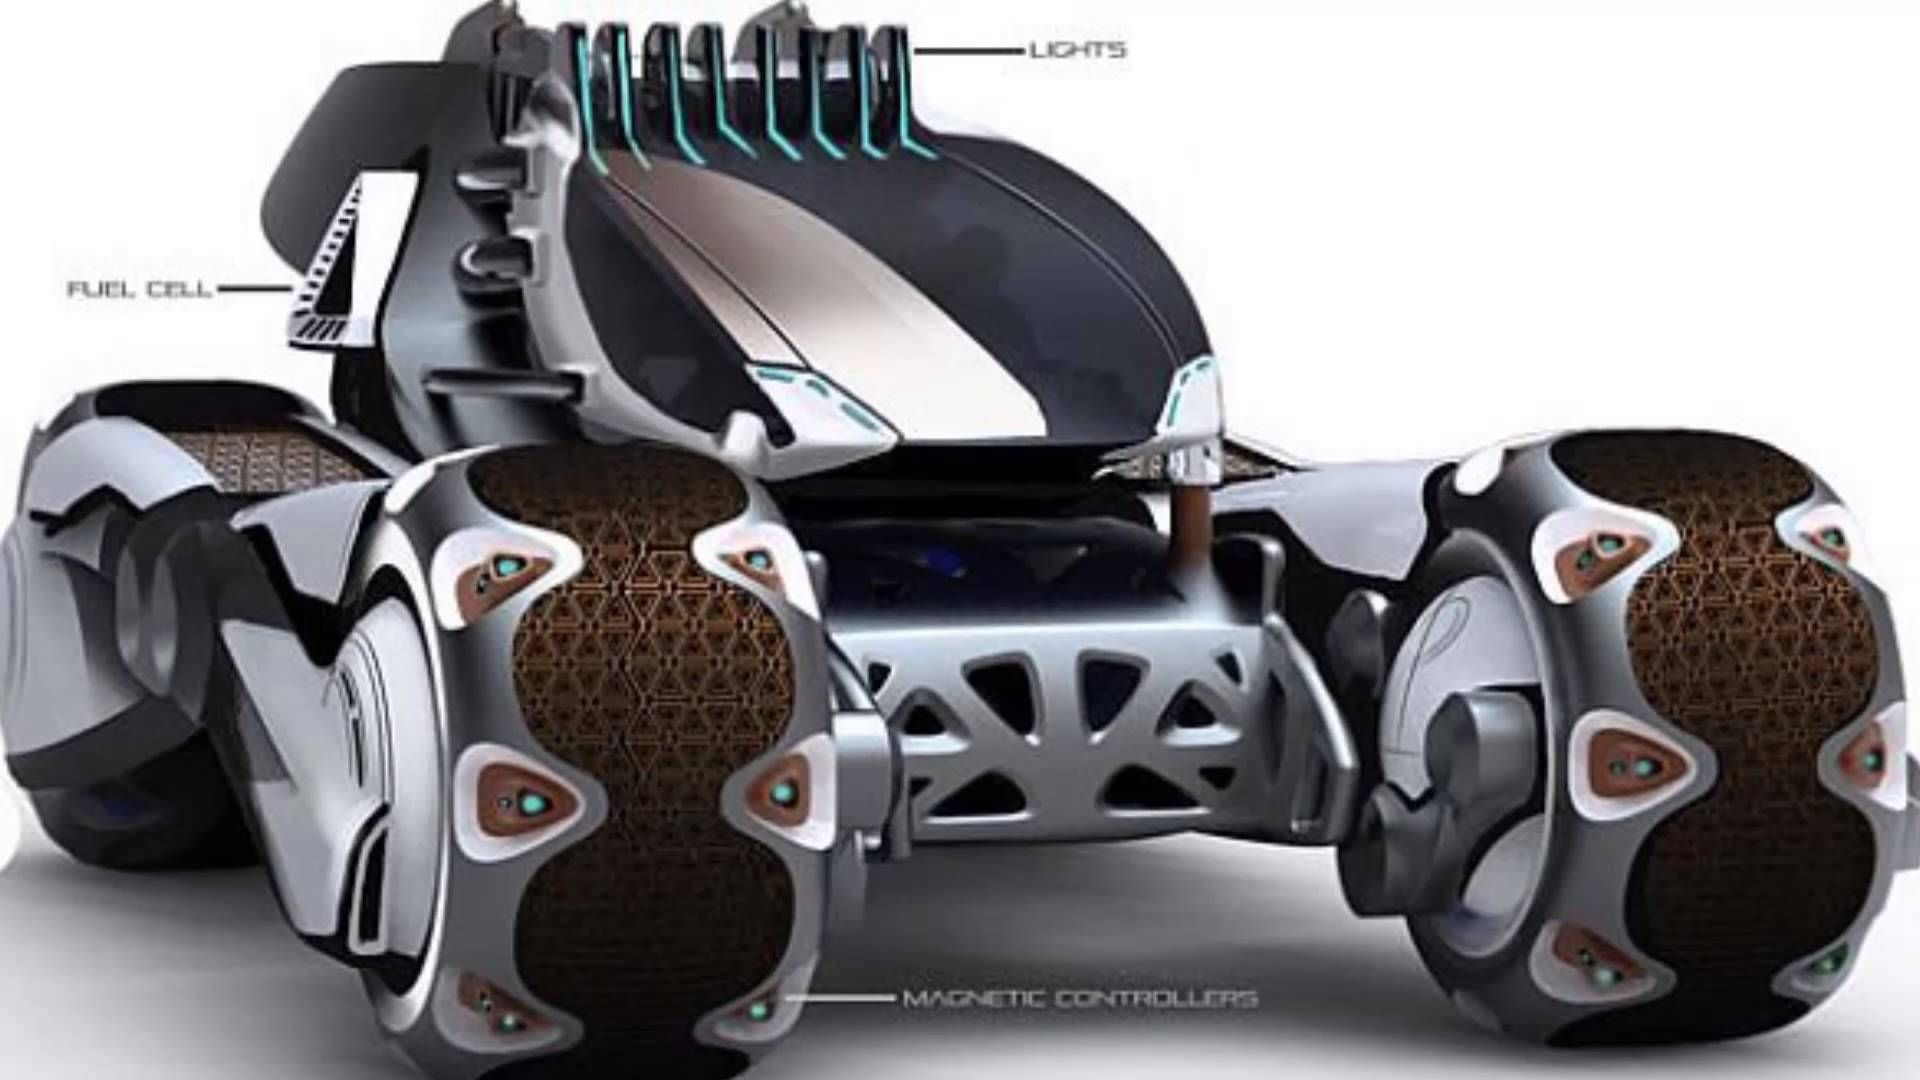 Latest Future Cars Made By Nanotechnology Of Year LoW - Cool cars 2020